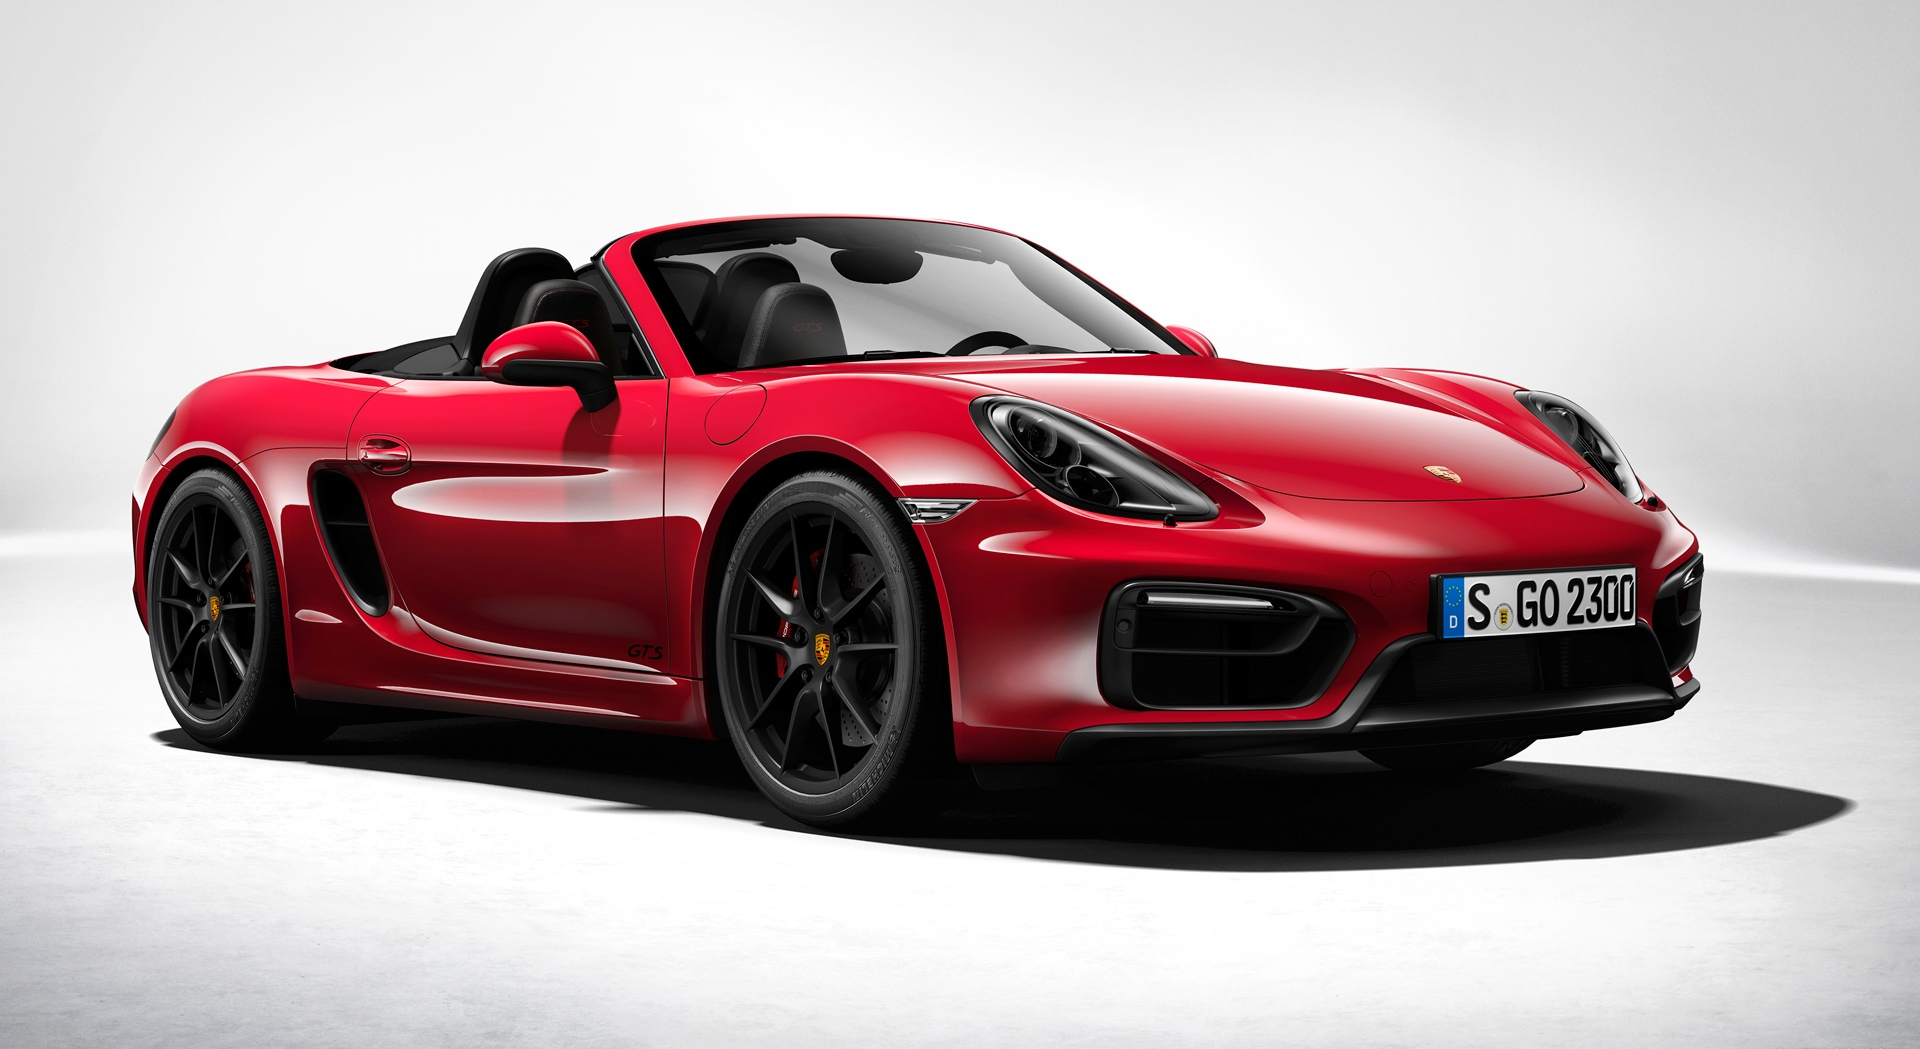 porsche boxster gts red price hd desktop wallpapers 4k hd. Black Bedroom Furniture Sets. Home Design Ideas